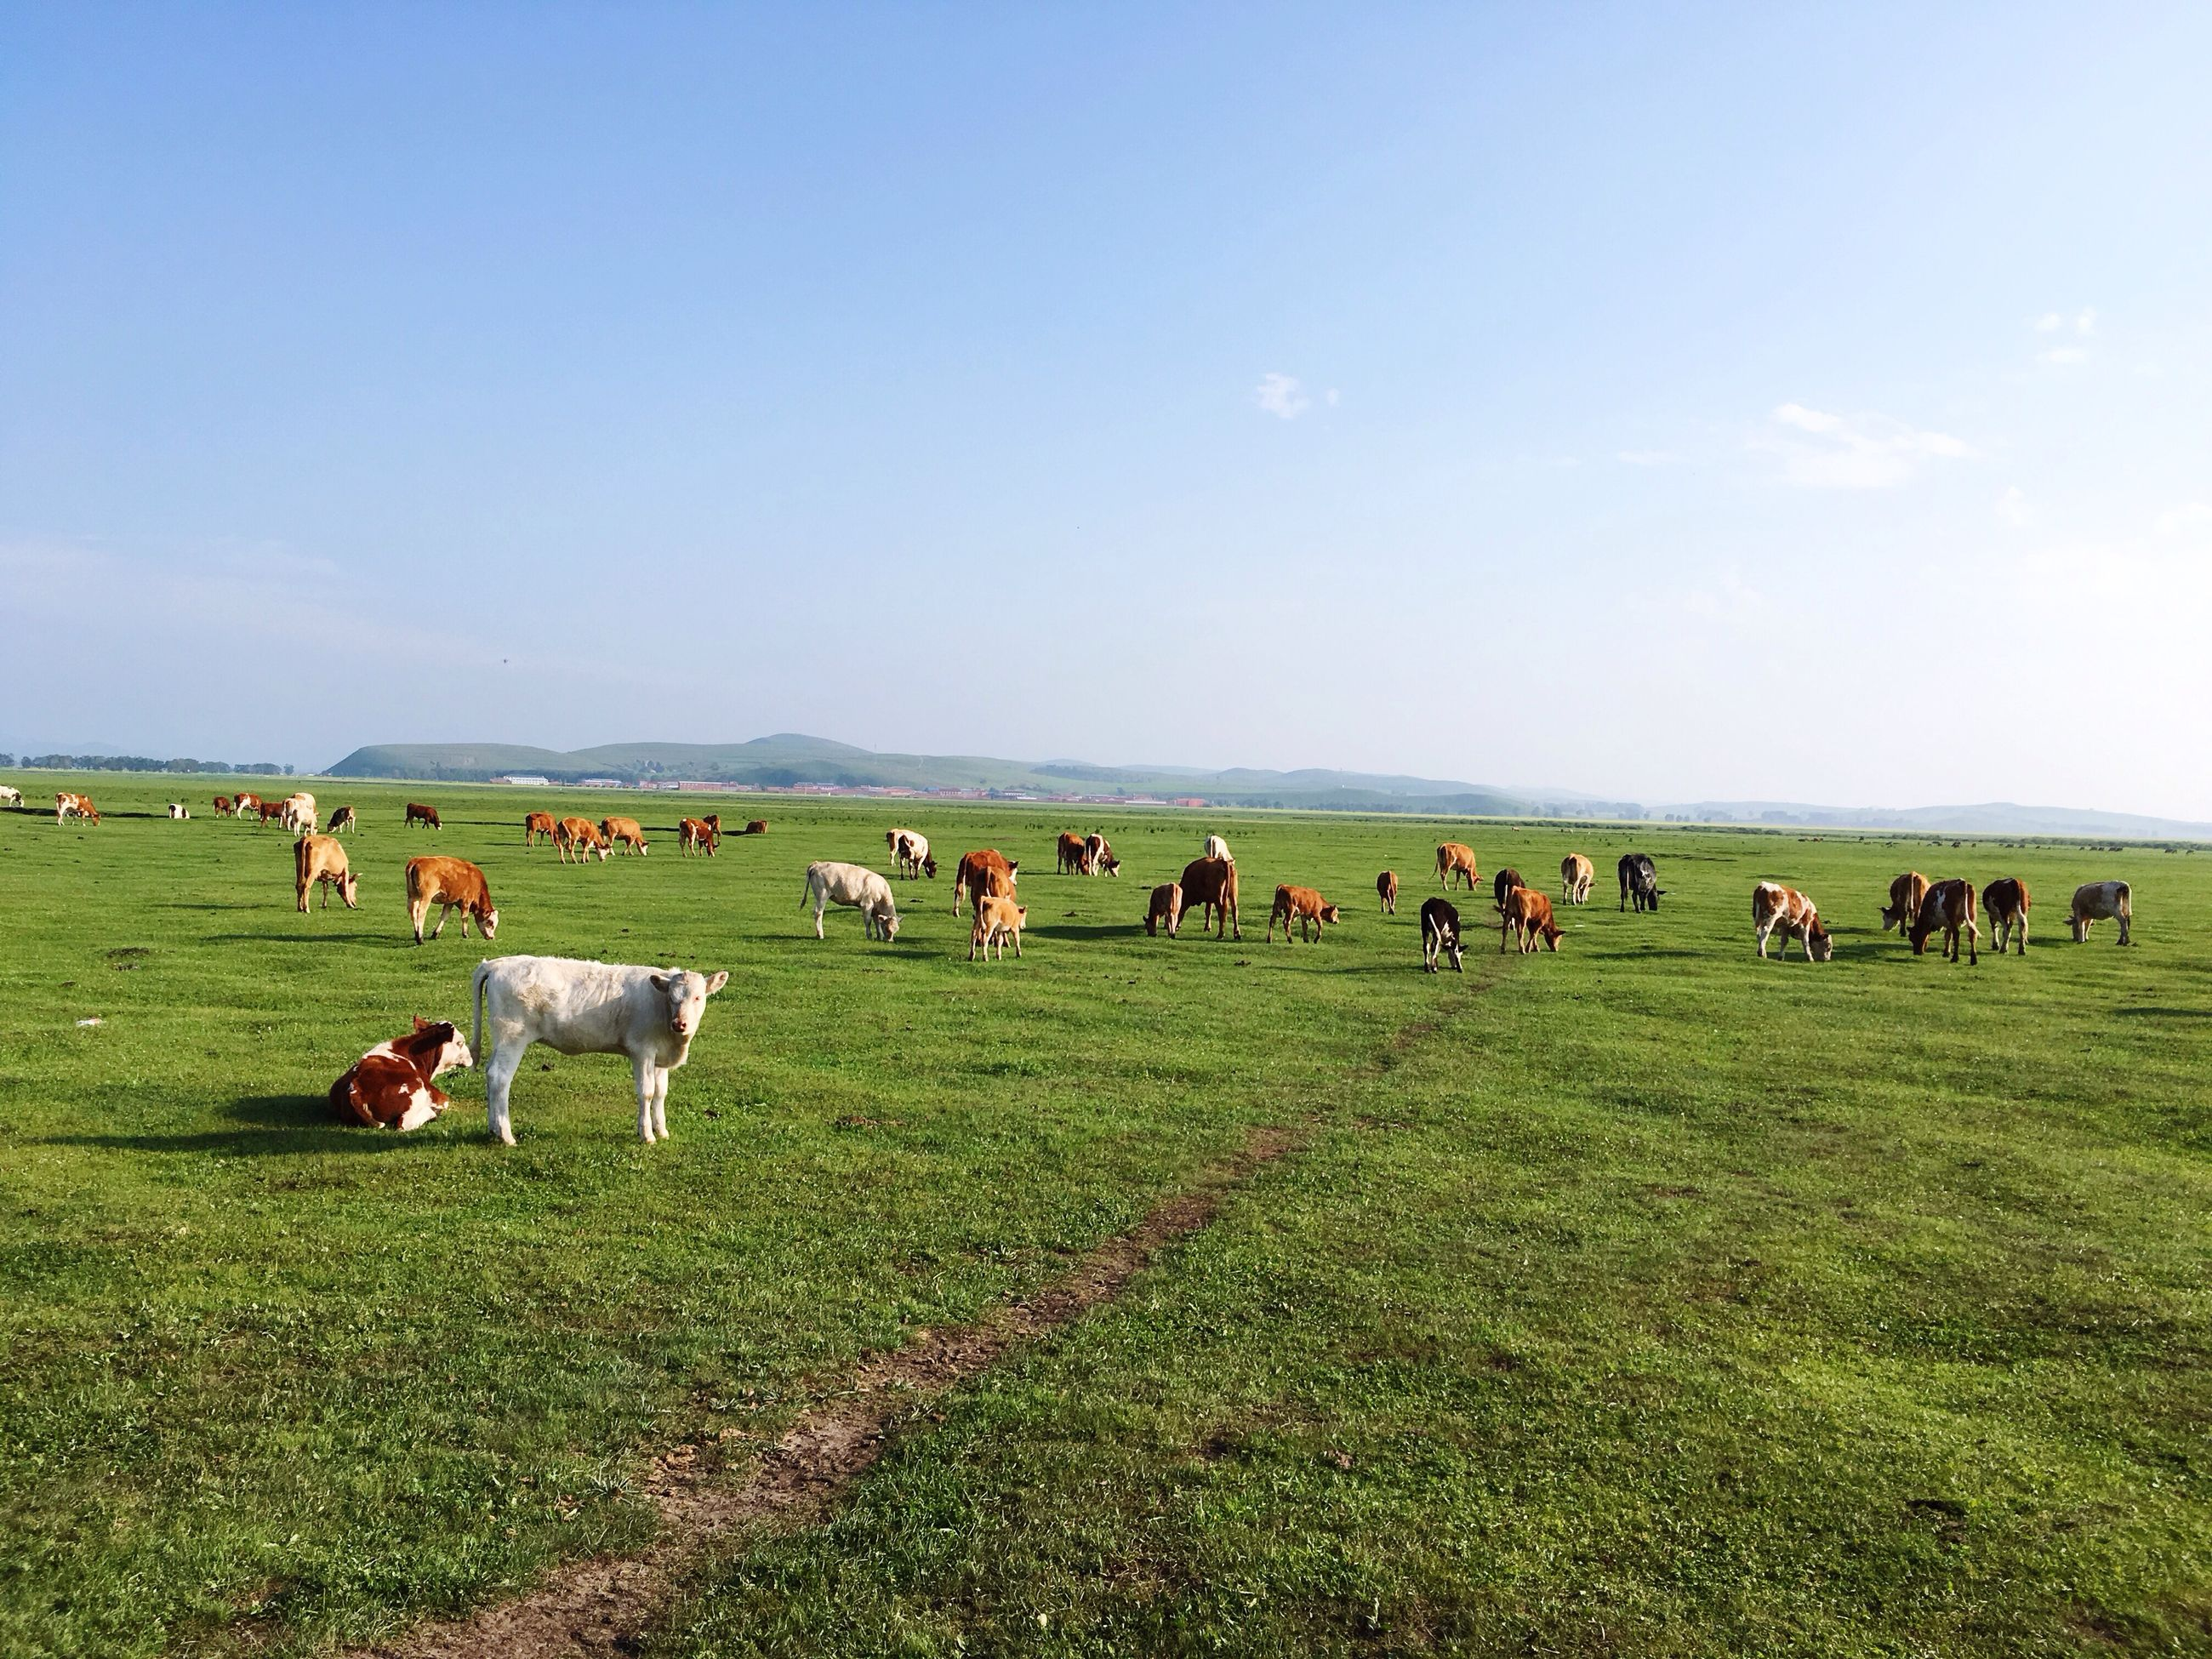 domestic animals, livestock, grass, field, landscape, large group of people, mammal, full length, green color, horizon over land, grazing, walking, pasture, green, blue, sky, grassy, rural scene, tranquil scene, domestic cattle, nature, tranquility, farm animal, casual clothing, day, solitude, zoology